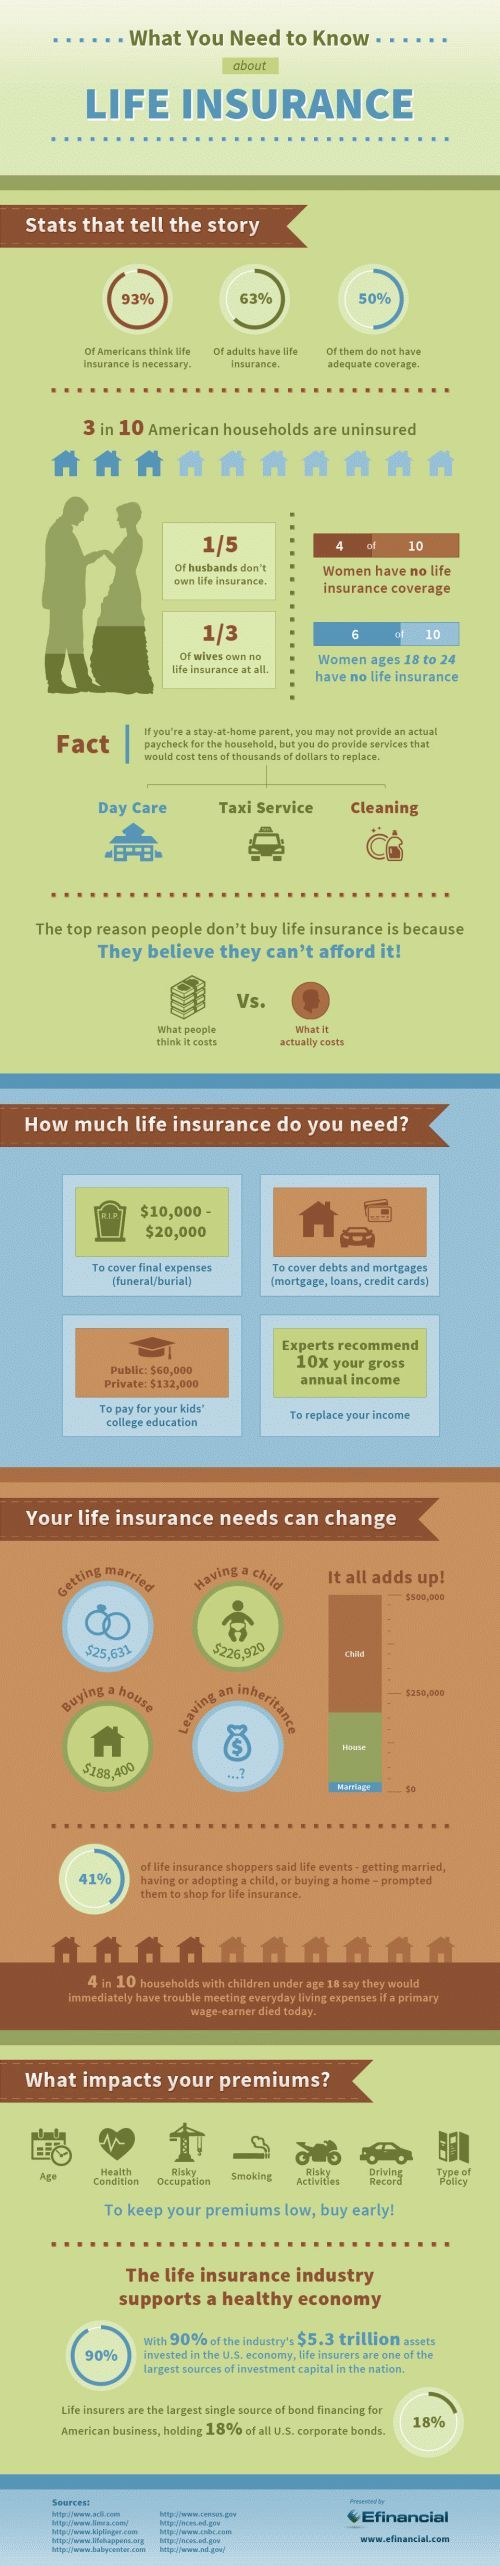 Life Insurance Quote Online 286 Best Insurance Images On Pinterest  Personal Finance Frugal